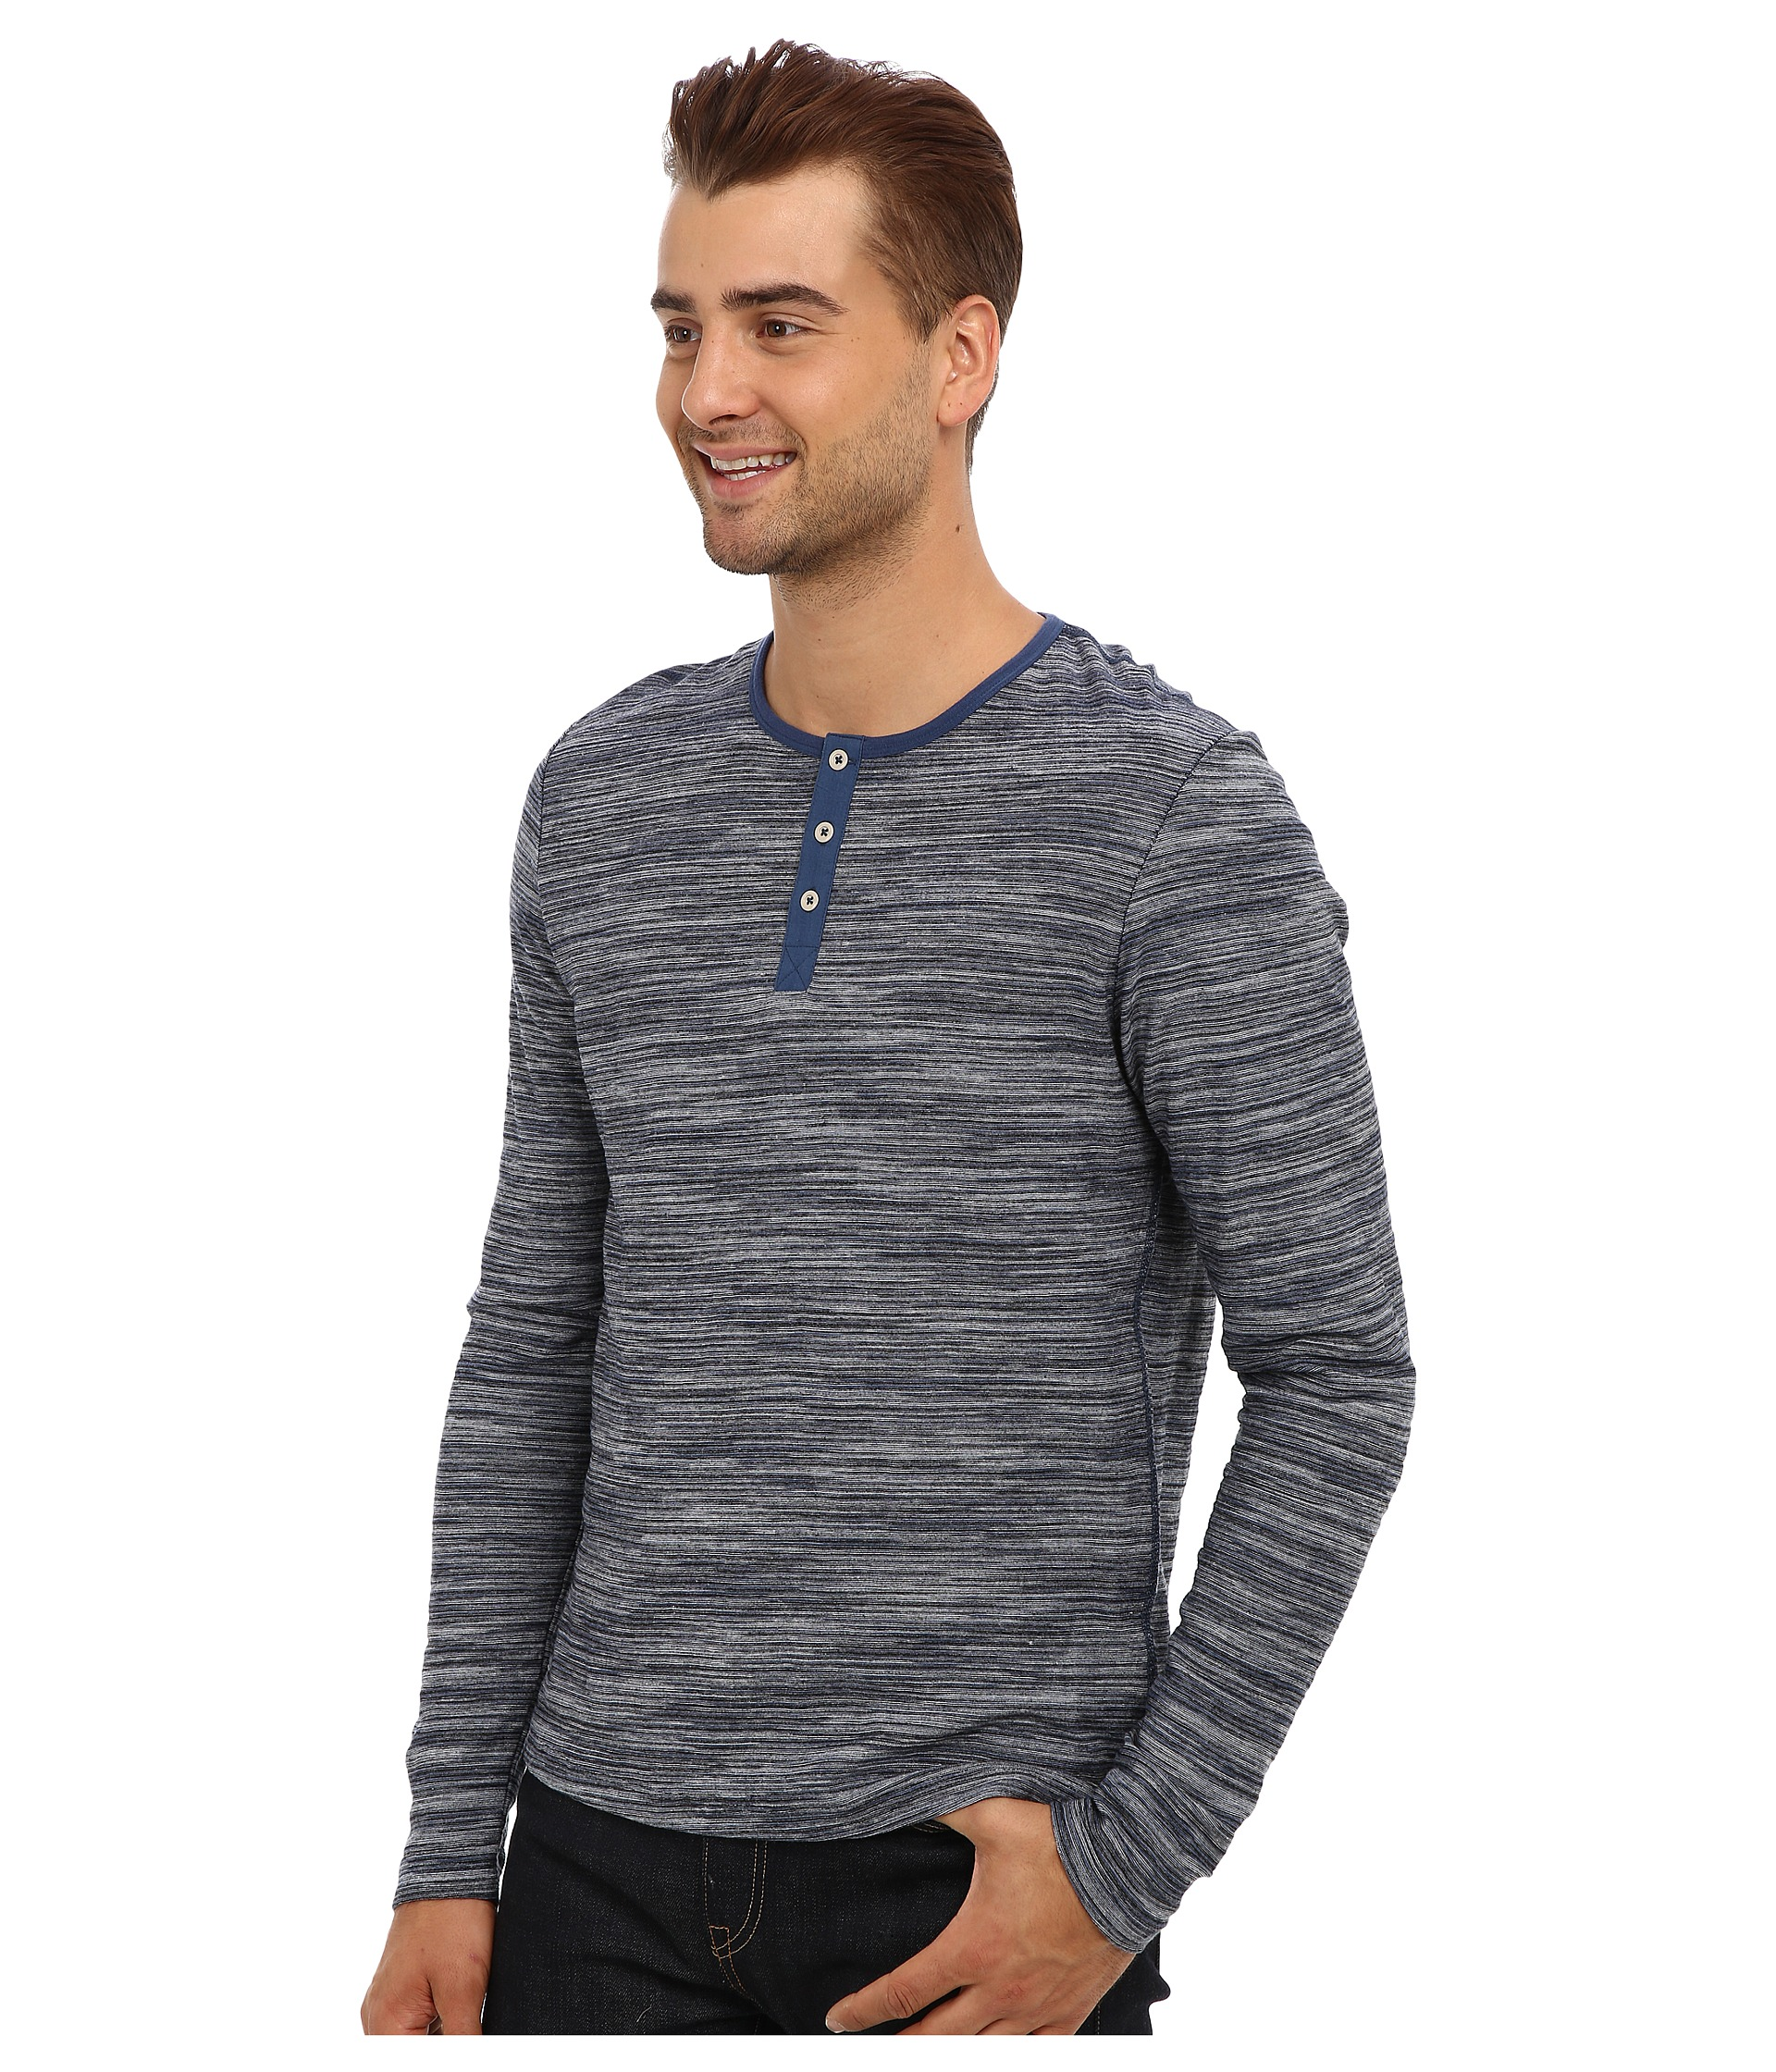 Buffalo David Bitton clothing, prices and information | 360peqilubufebor.cfck and easy· Over brands· The fashion finder· Always the best price.